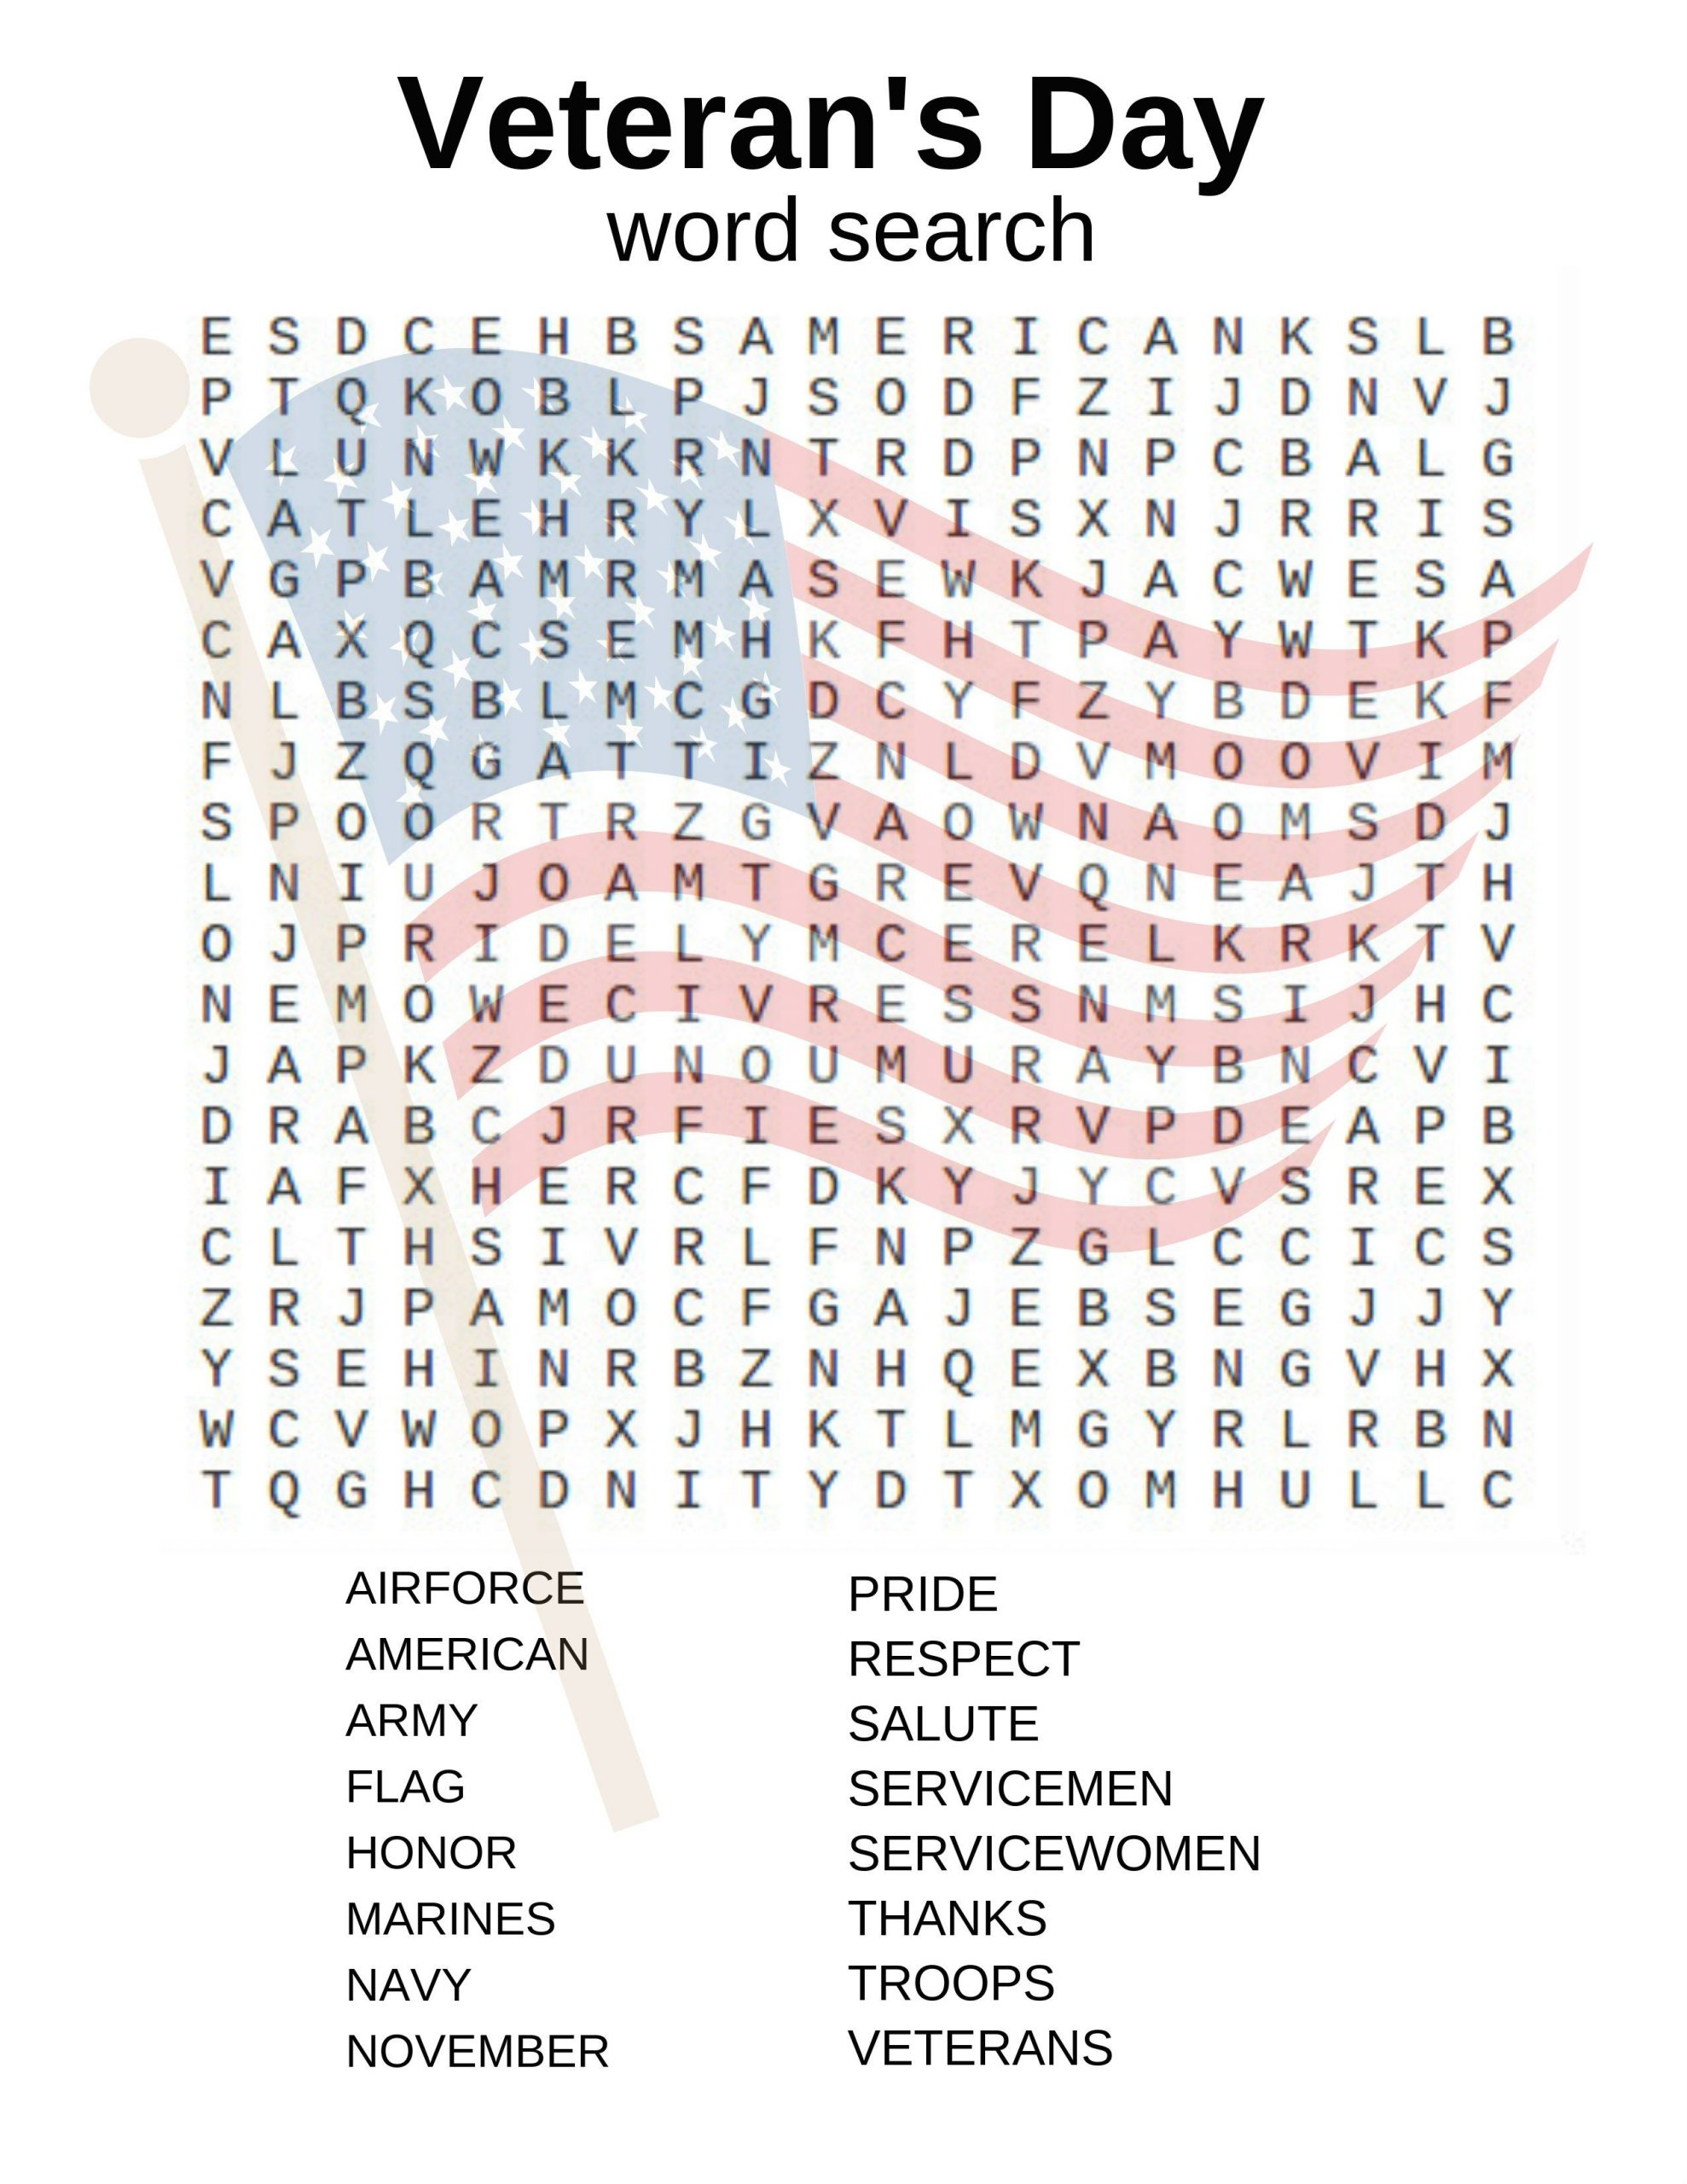 Veteran's Day Word Search And Other Activities!   Veterans